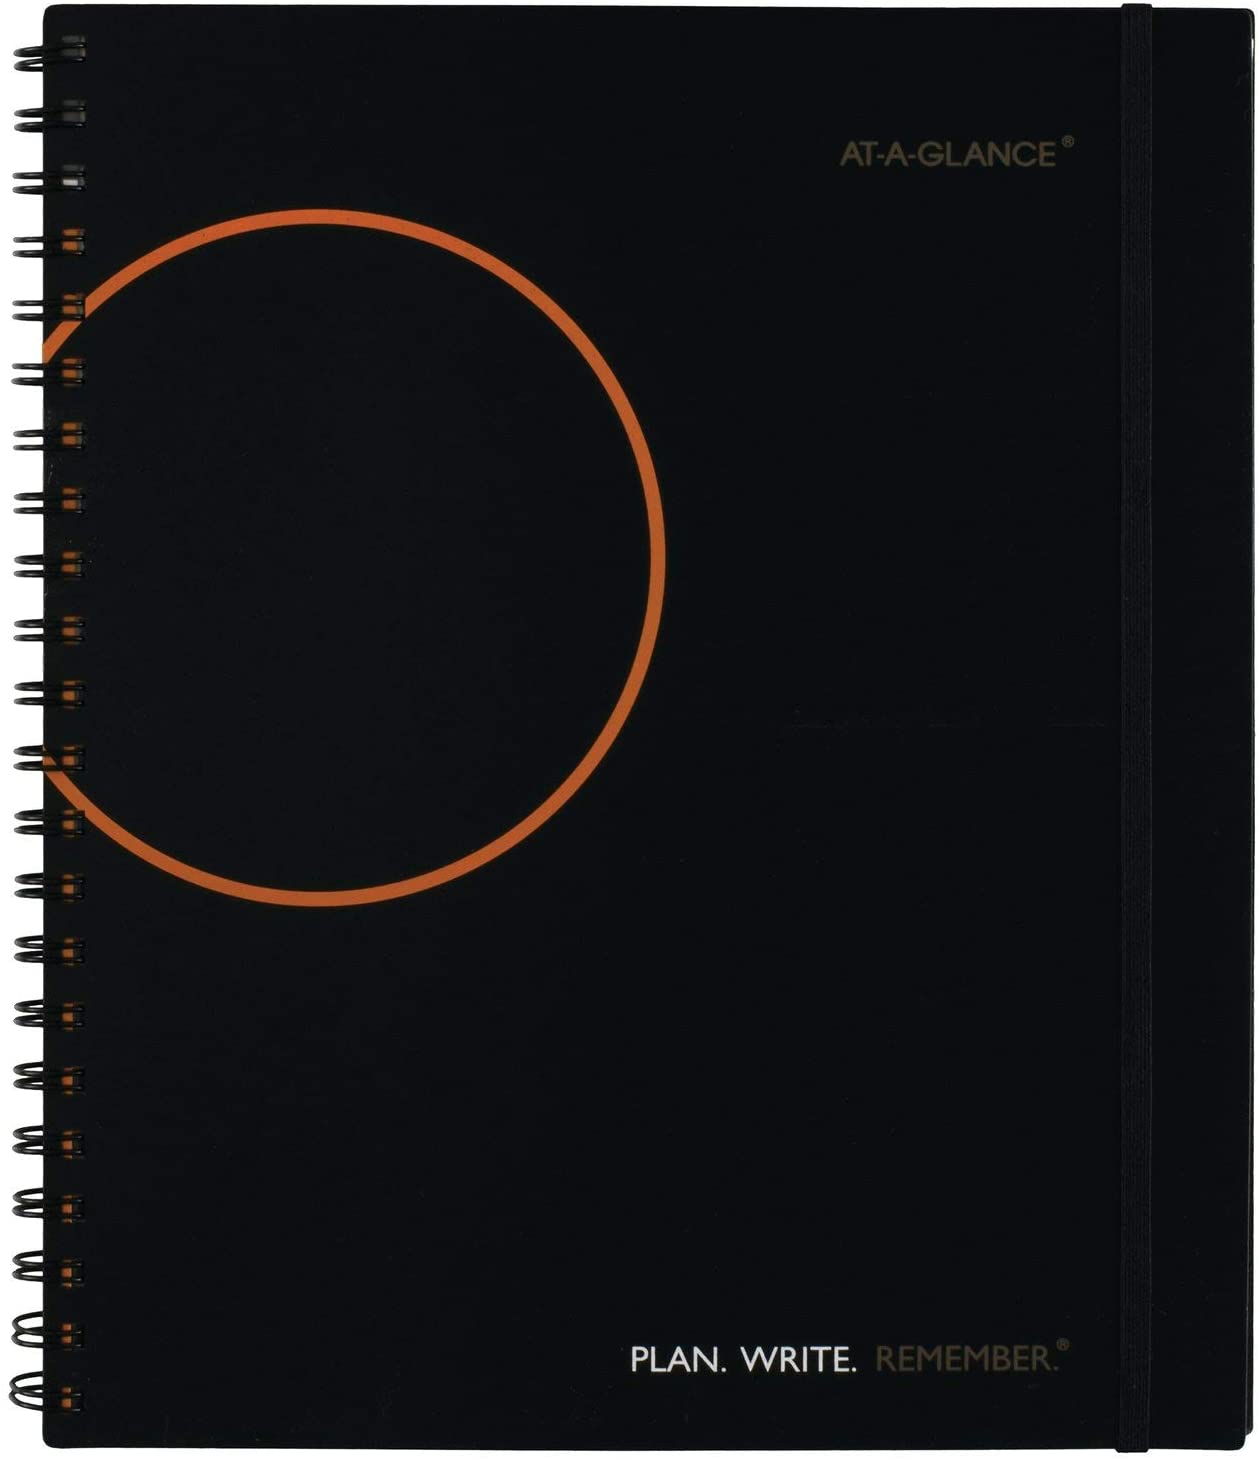 AT-A-GLANCE Planning Notebook with Reference Calendars, Plan.Write.Remember., 9.19 x 11 Inches, Black (70-6209-05)